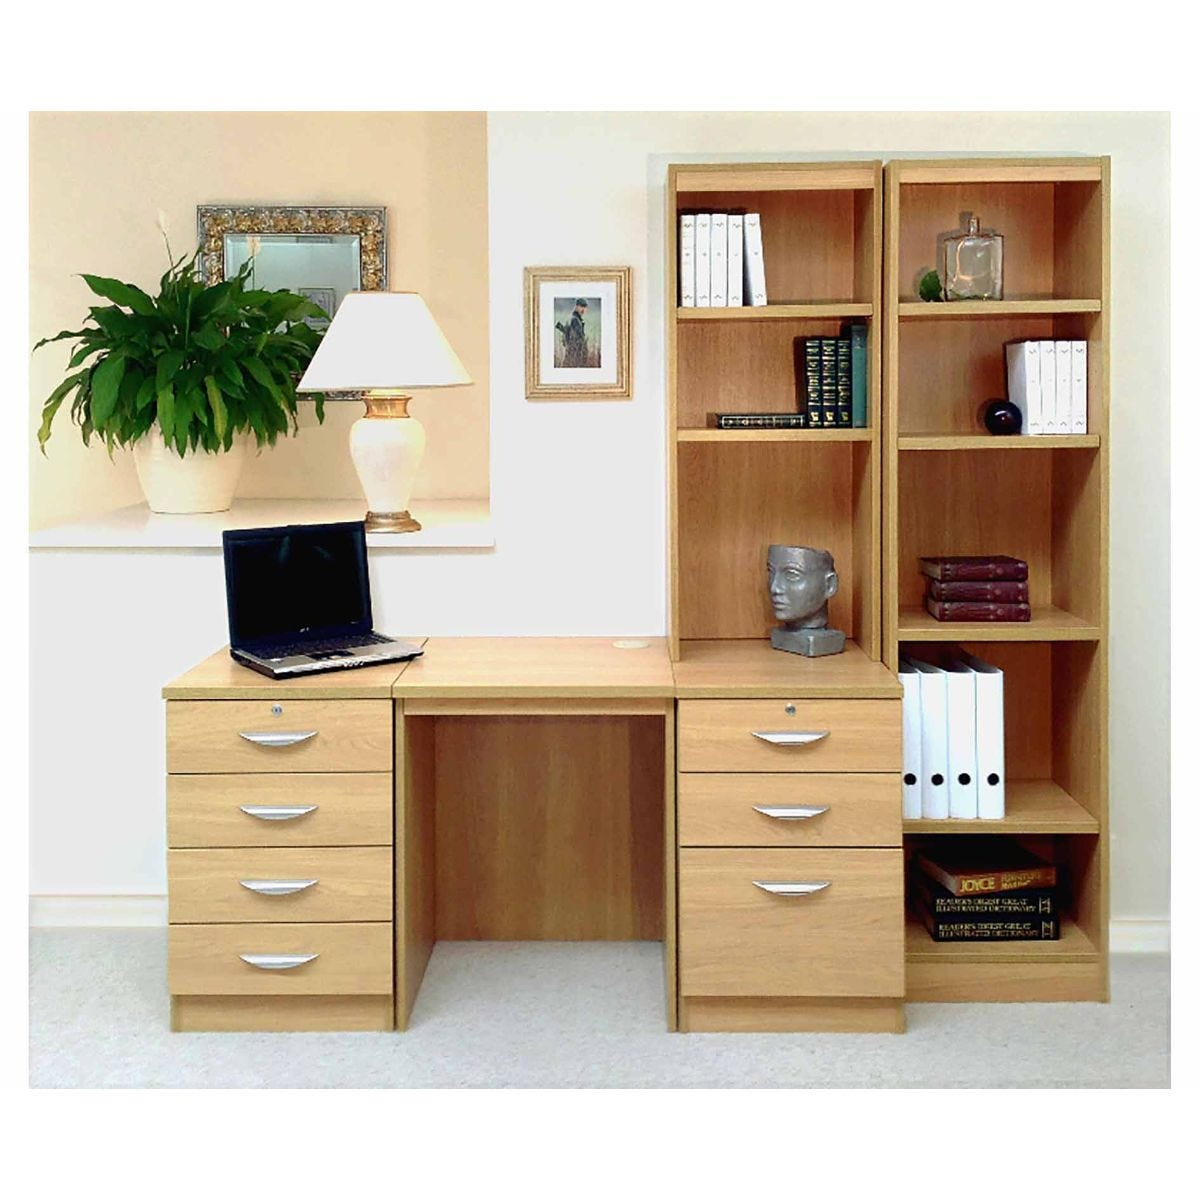 R White Home Office Desk with Side Shelving, Classic Oak